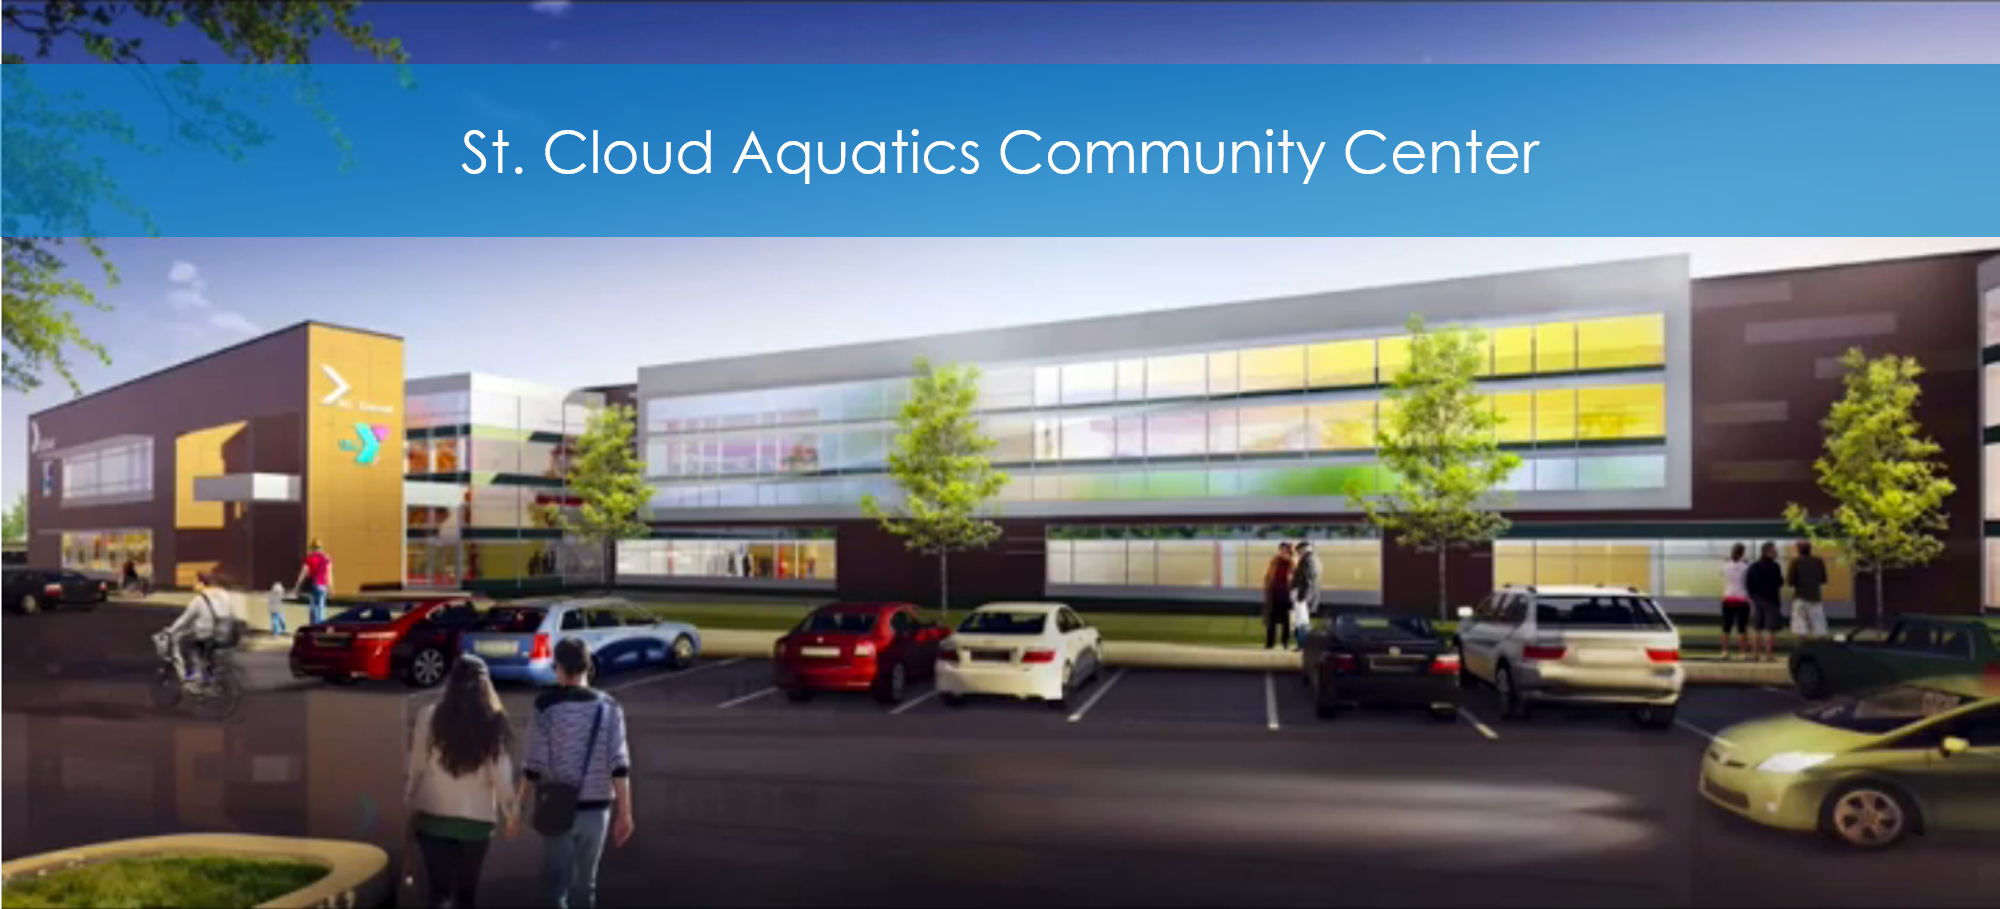 St. Cloud Aquatics Community Center